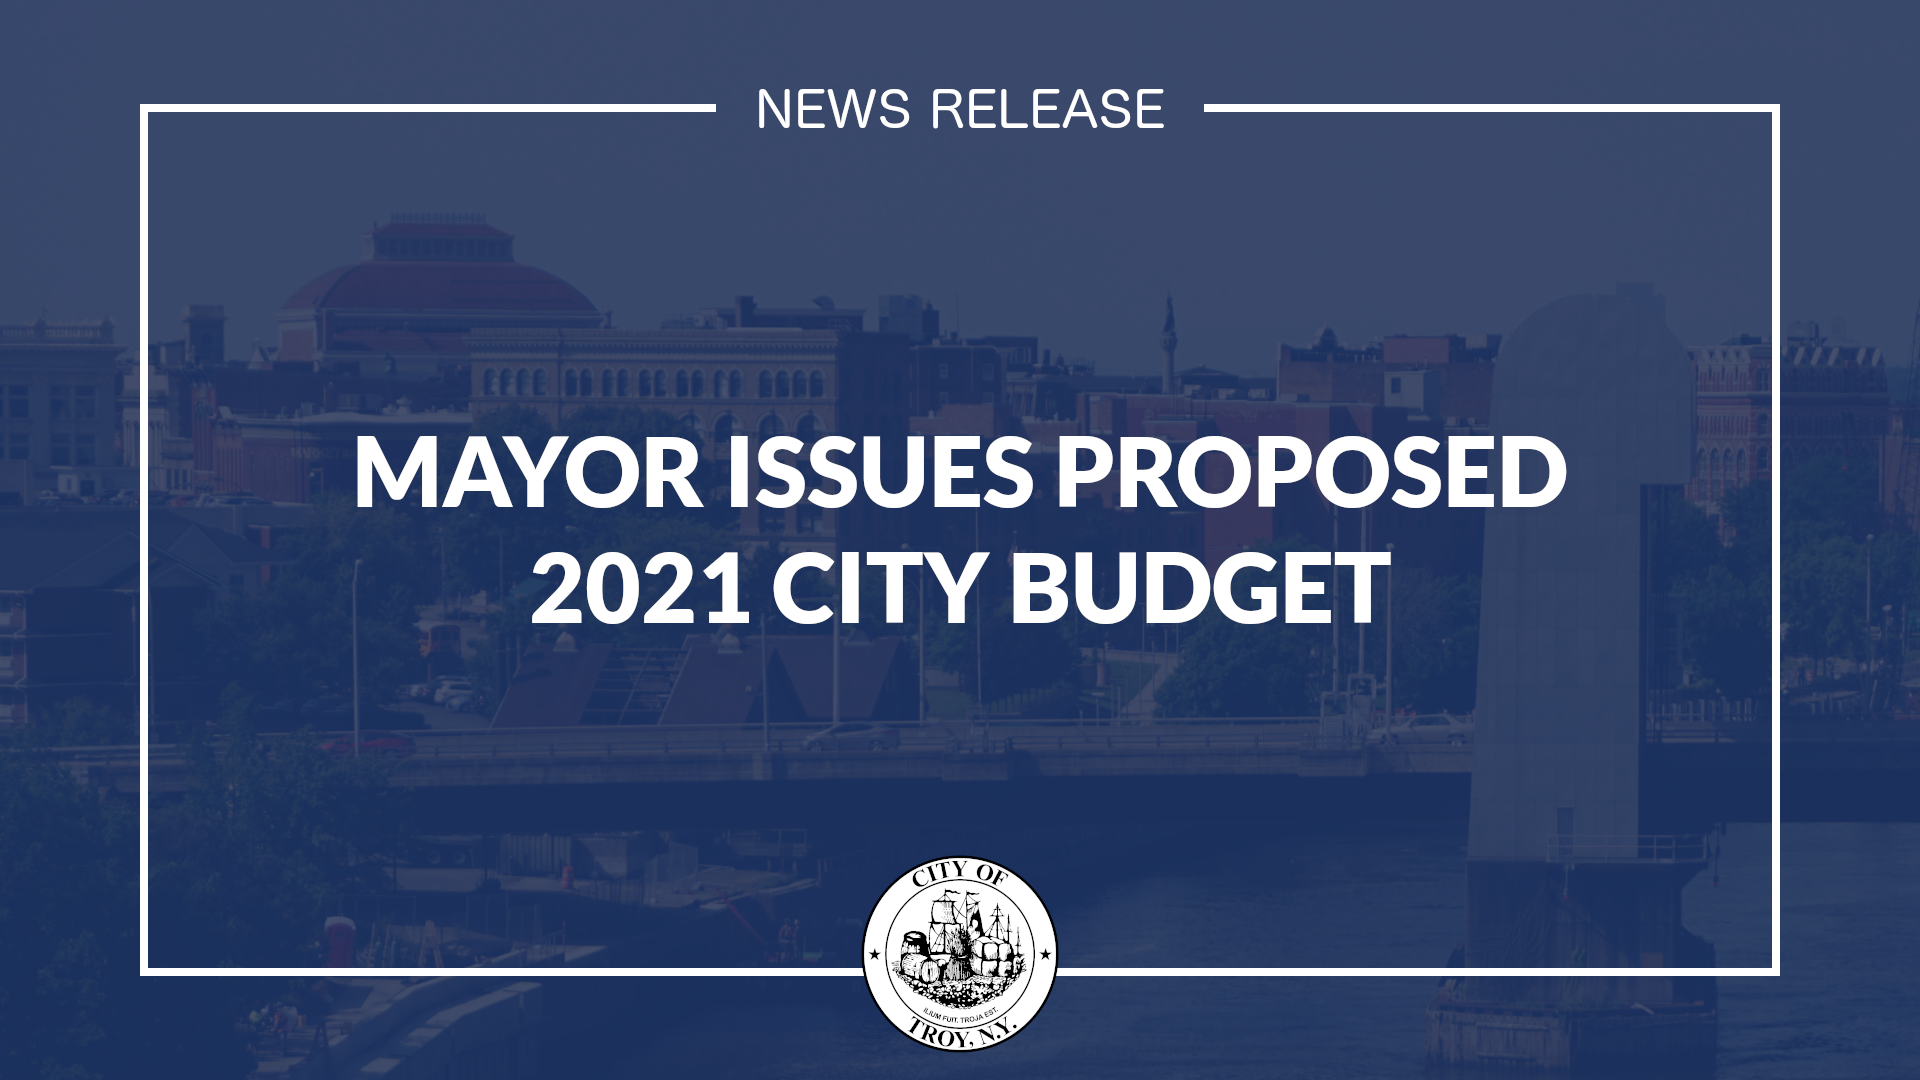 White text against transparent blue background. Text reads Mayor Issues Proposed 2021 City Budget